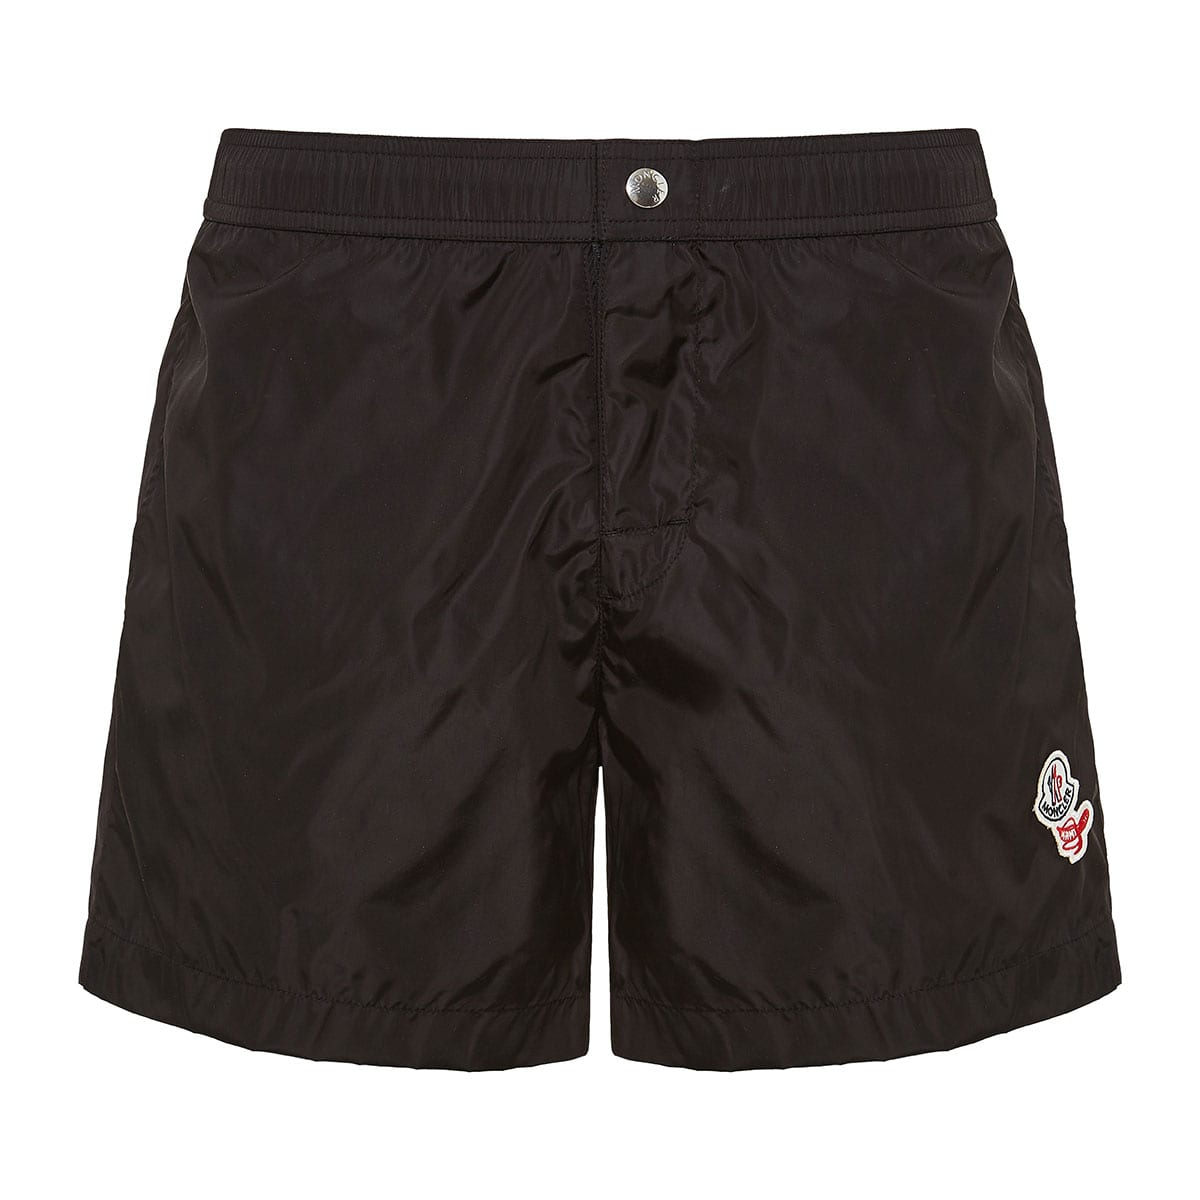 2 Moncler 1952 logo swim shorts